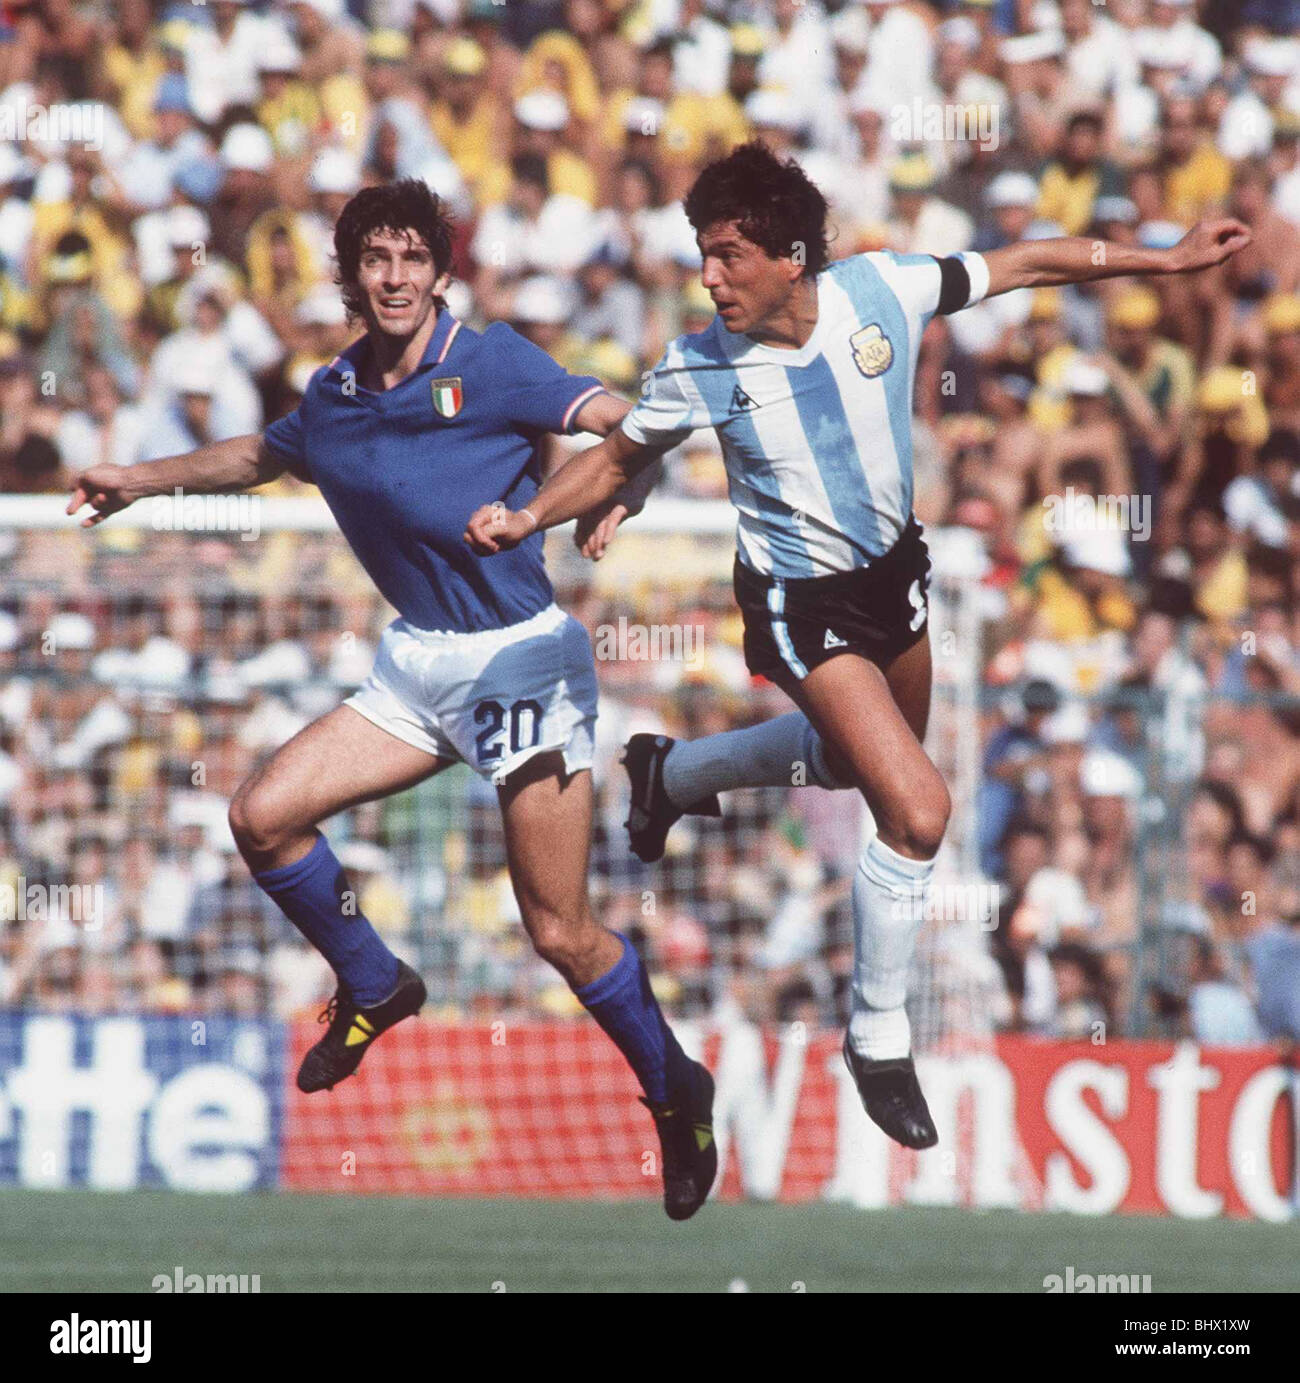 Vasco Rossi 1982 Paolo Rossi Stock Photos Paolo Rossi Stock Images Alamy